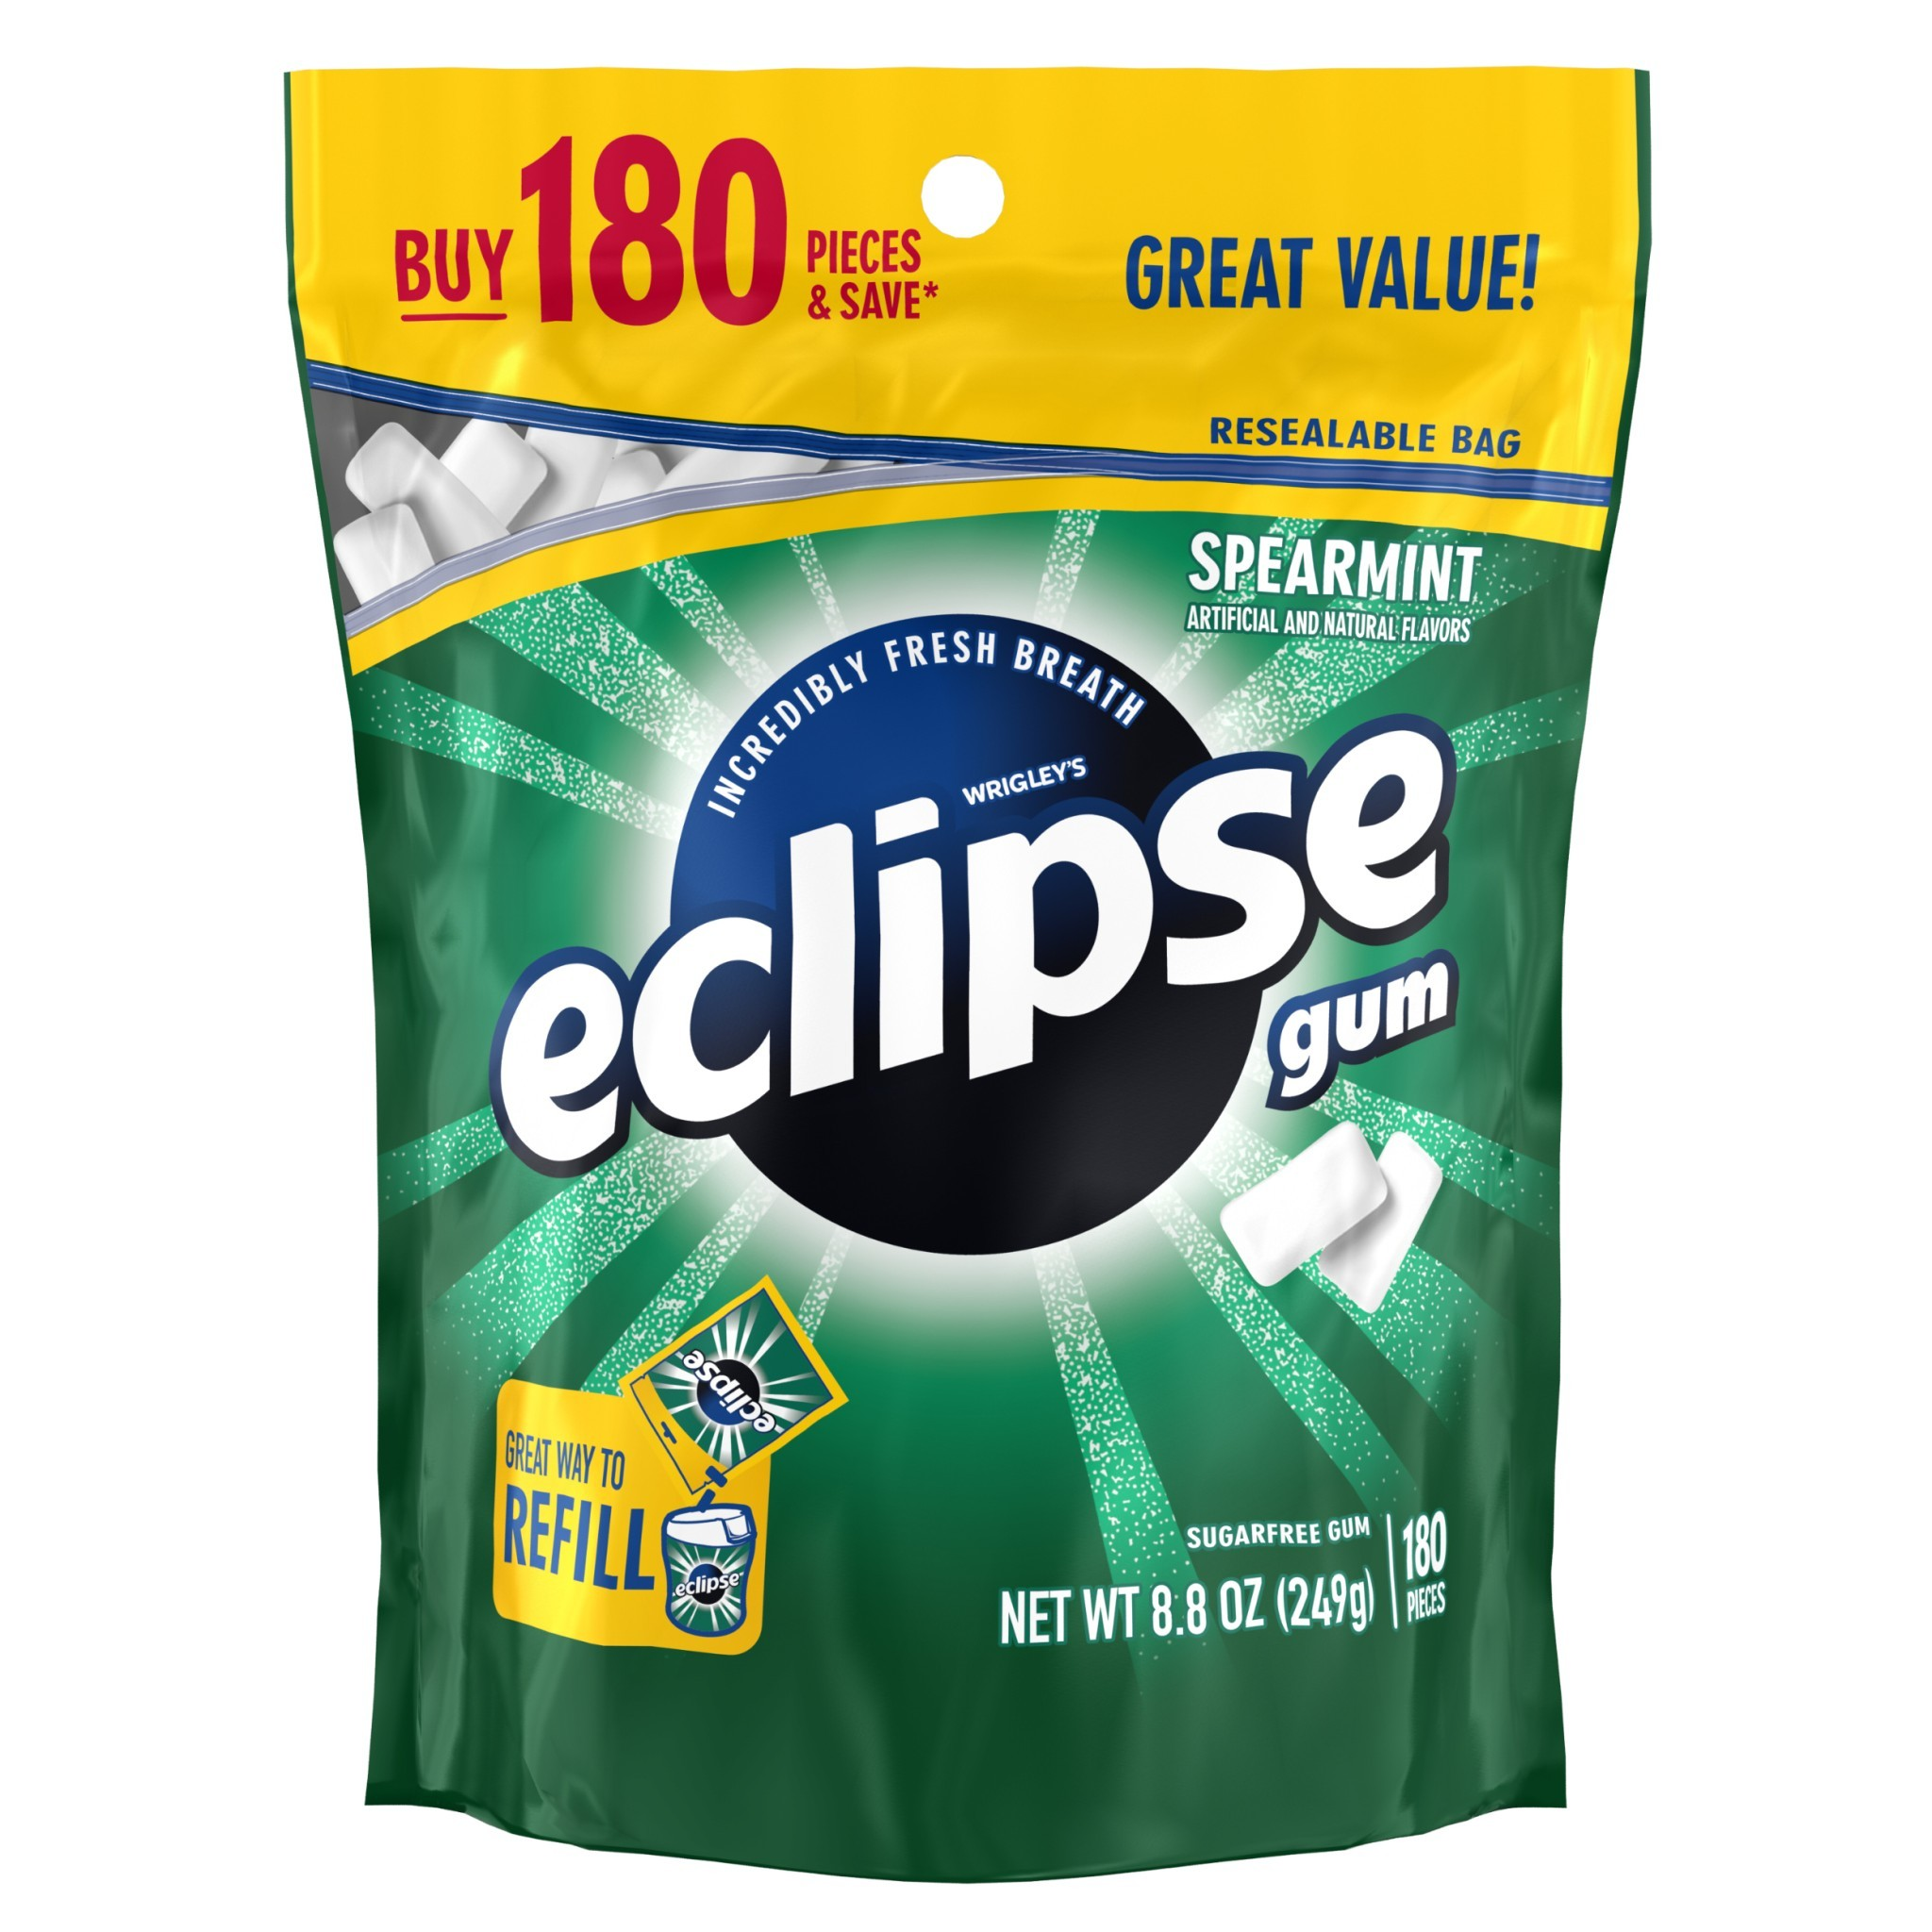 (2 Pack) Eclipse, Sugar Free Spearmint Chewing Gum, 180 Pcs